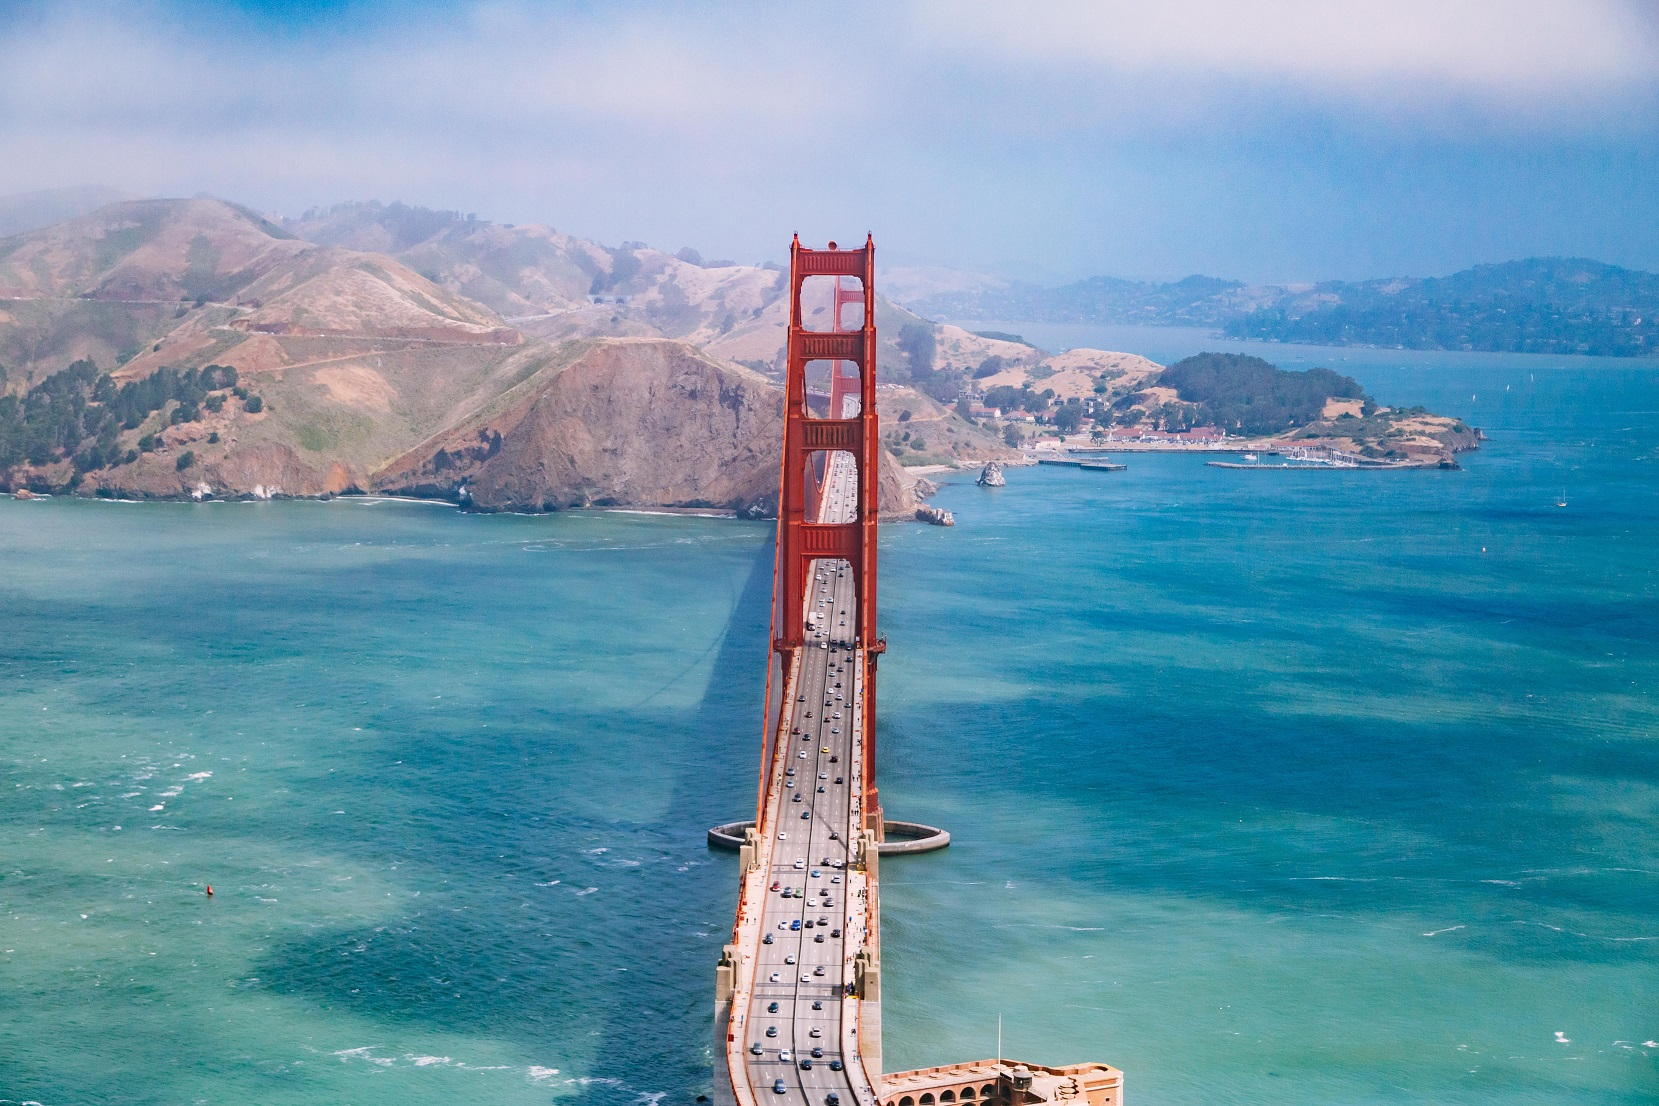 San Francisco: 10 activities to include in your travel itinerary